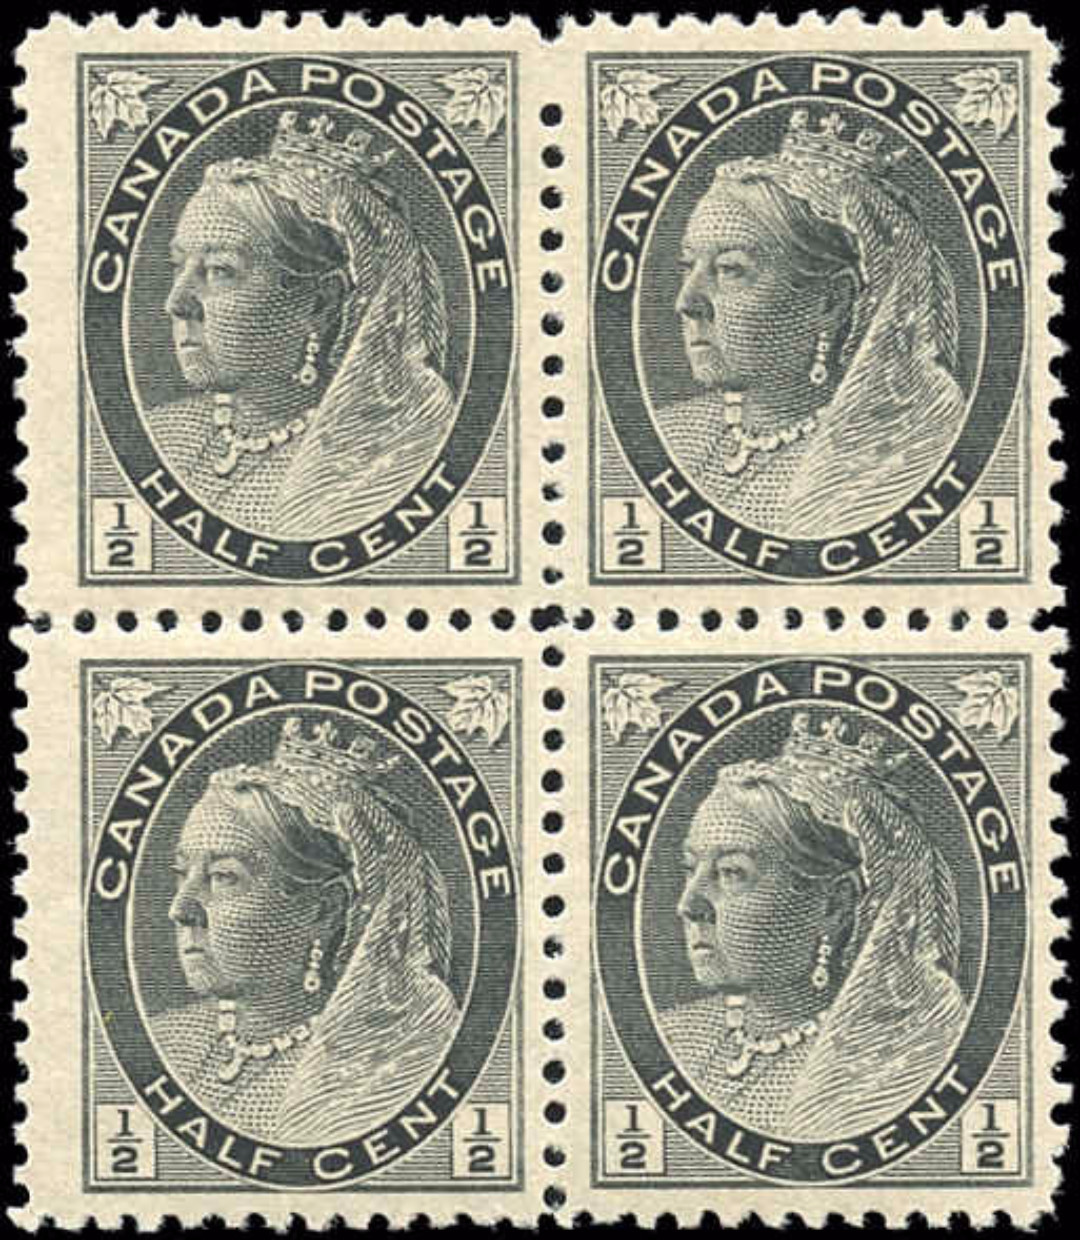 Canada ##74, Numeral Issue, F-VF, MNH